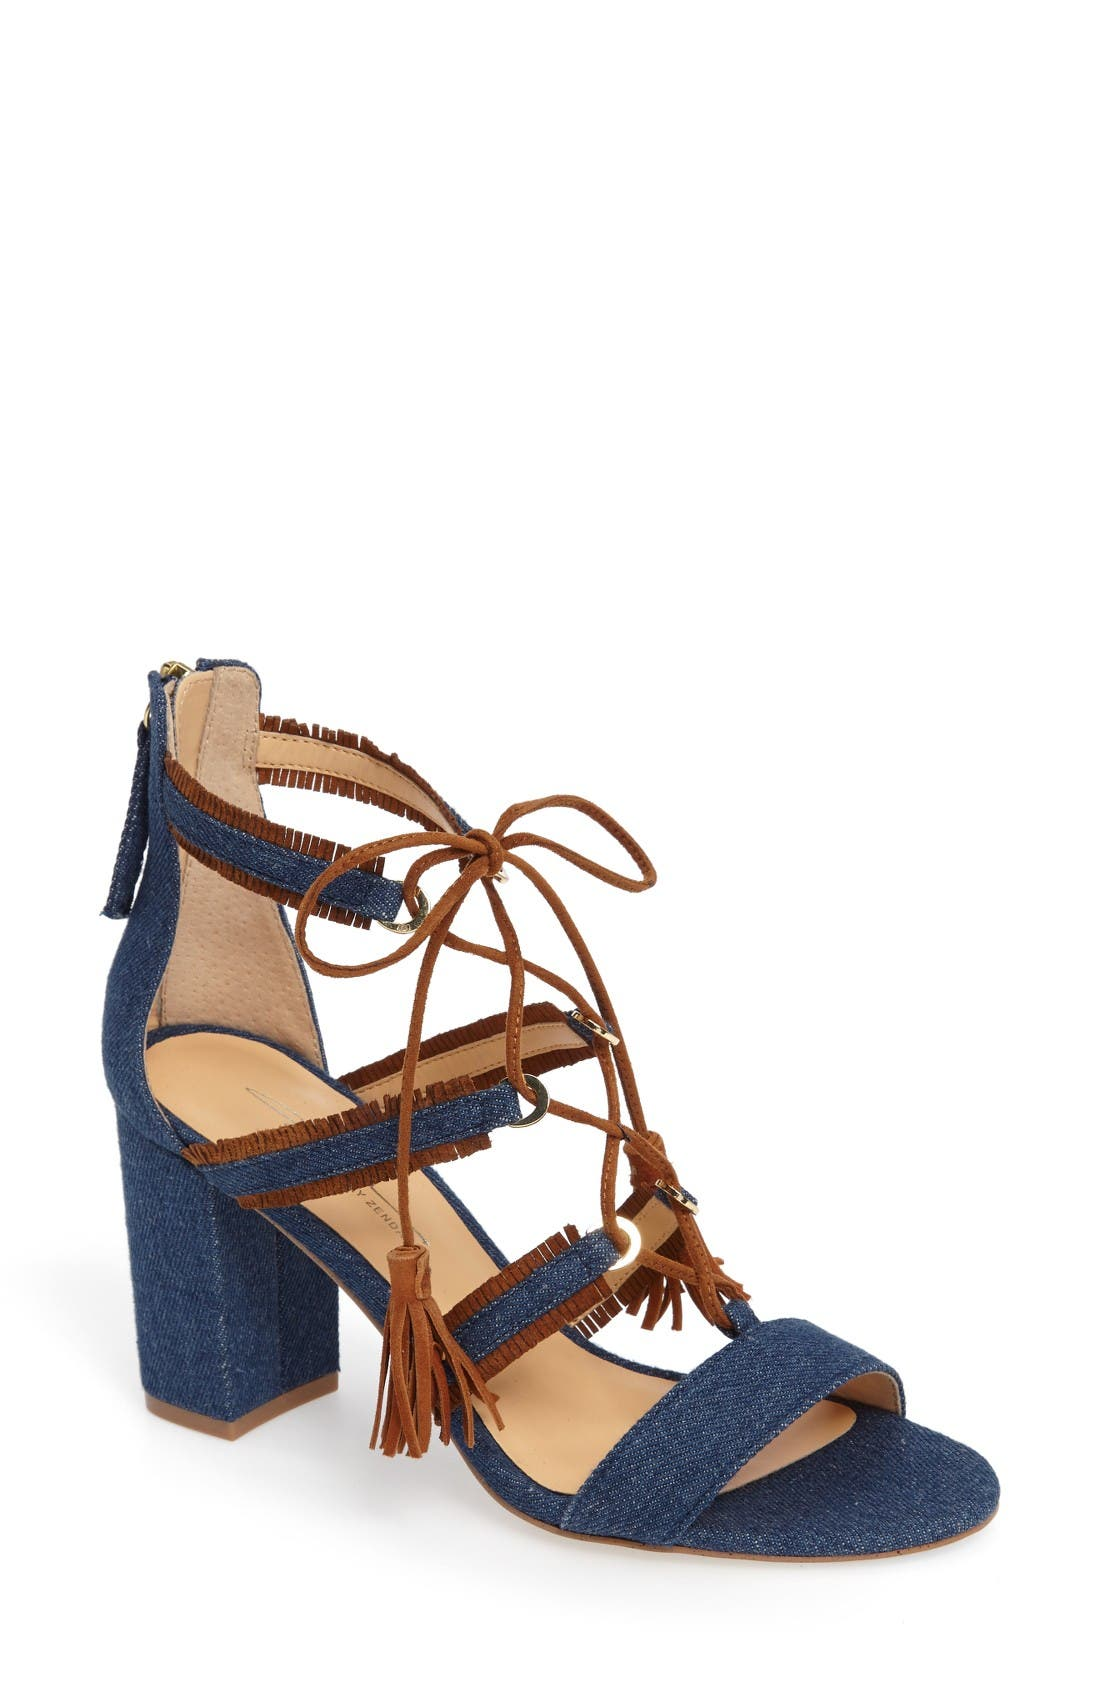 by Zendaya Meadow Ghillie Fringe Sandal